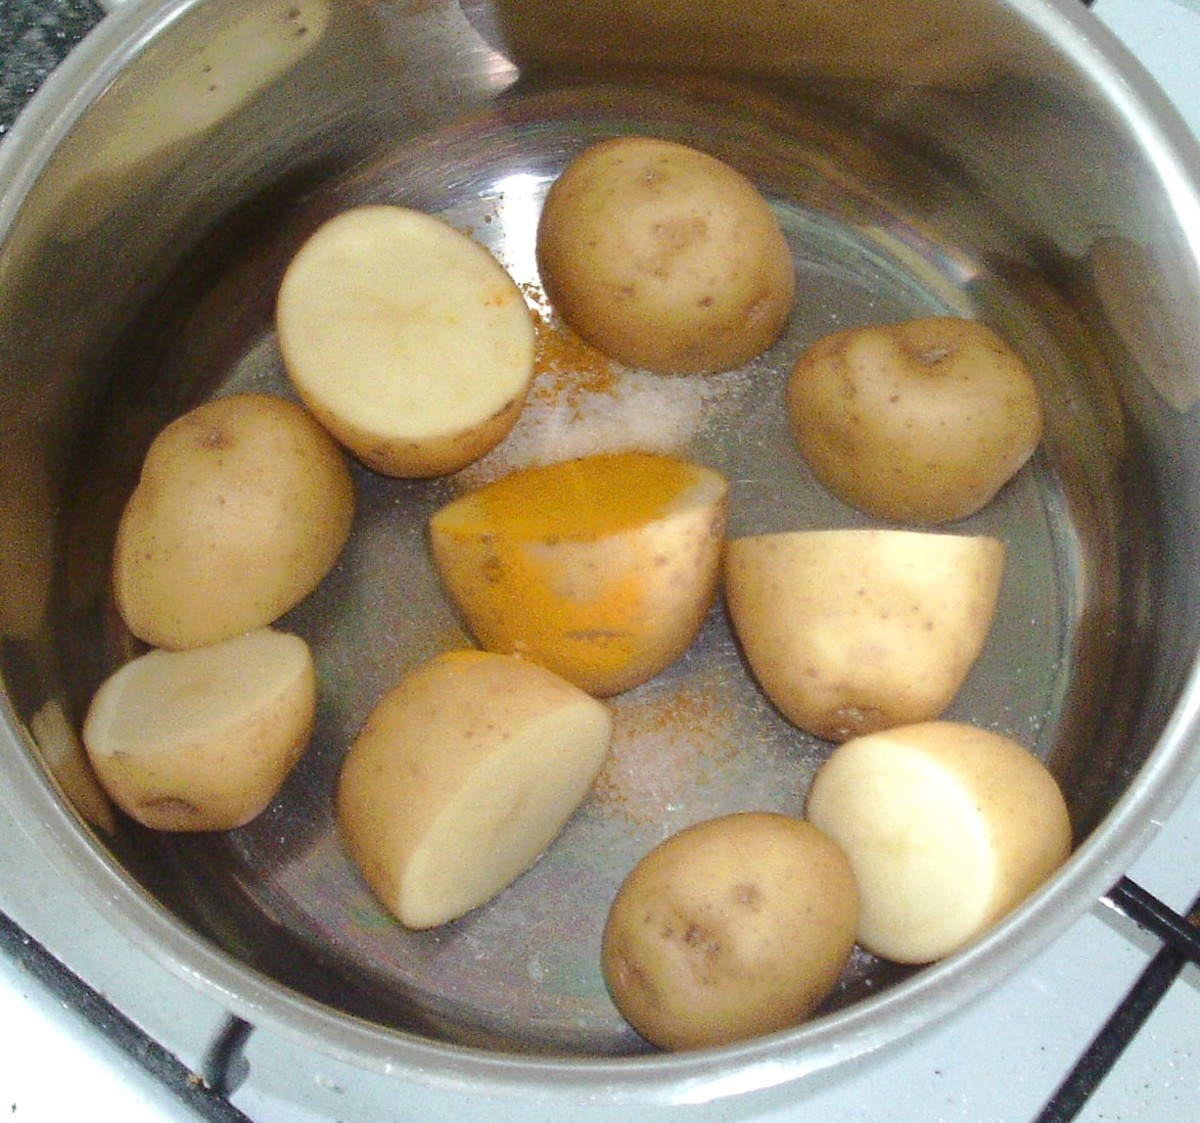 Salt and turmeric are added to prepared potatoes